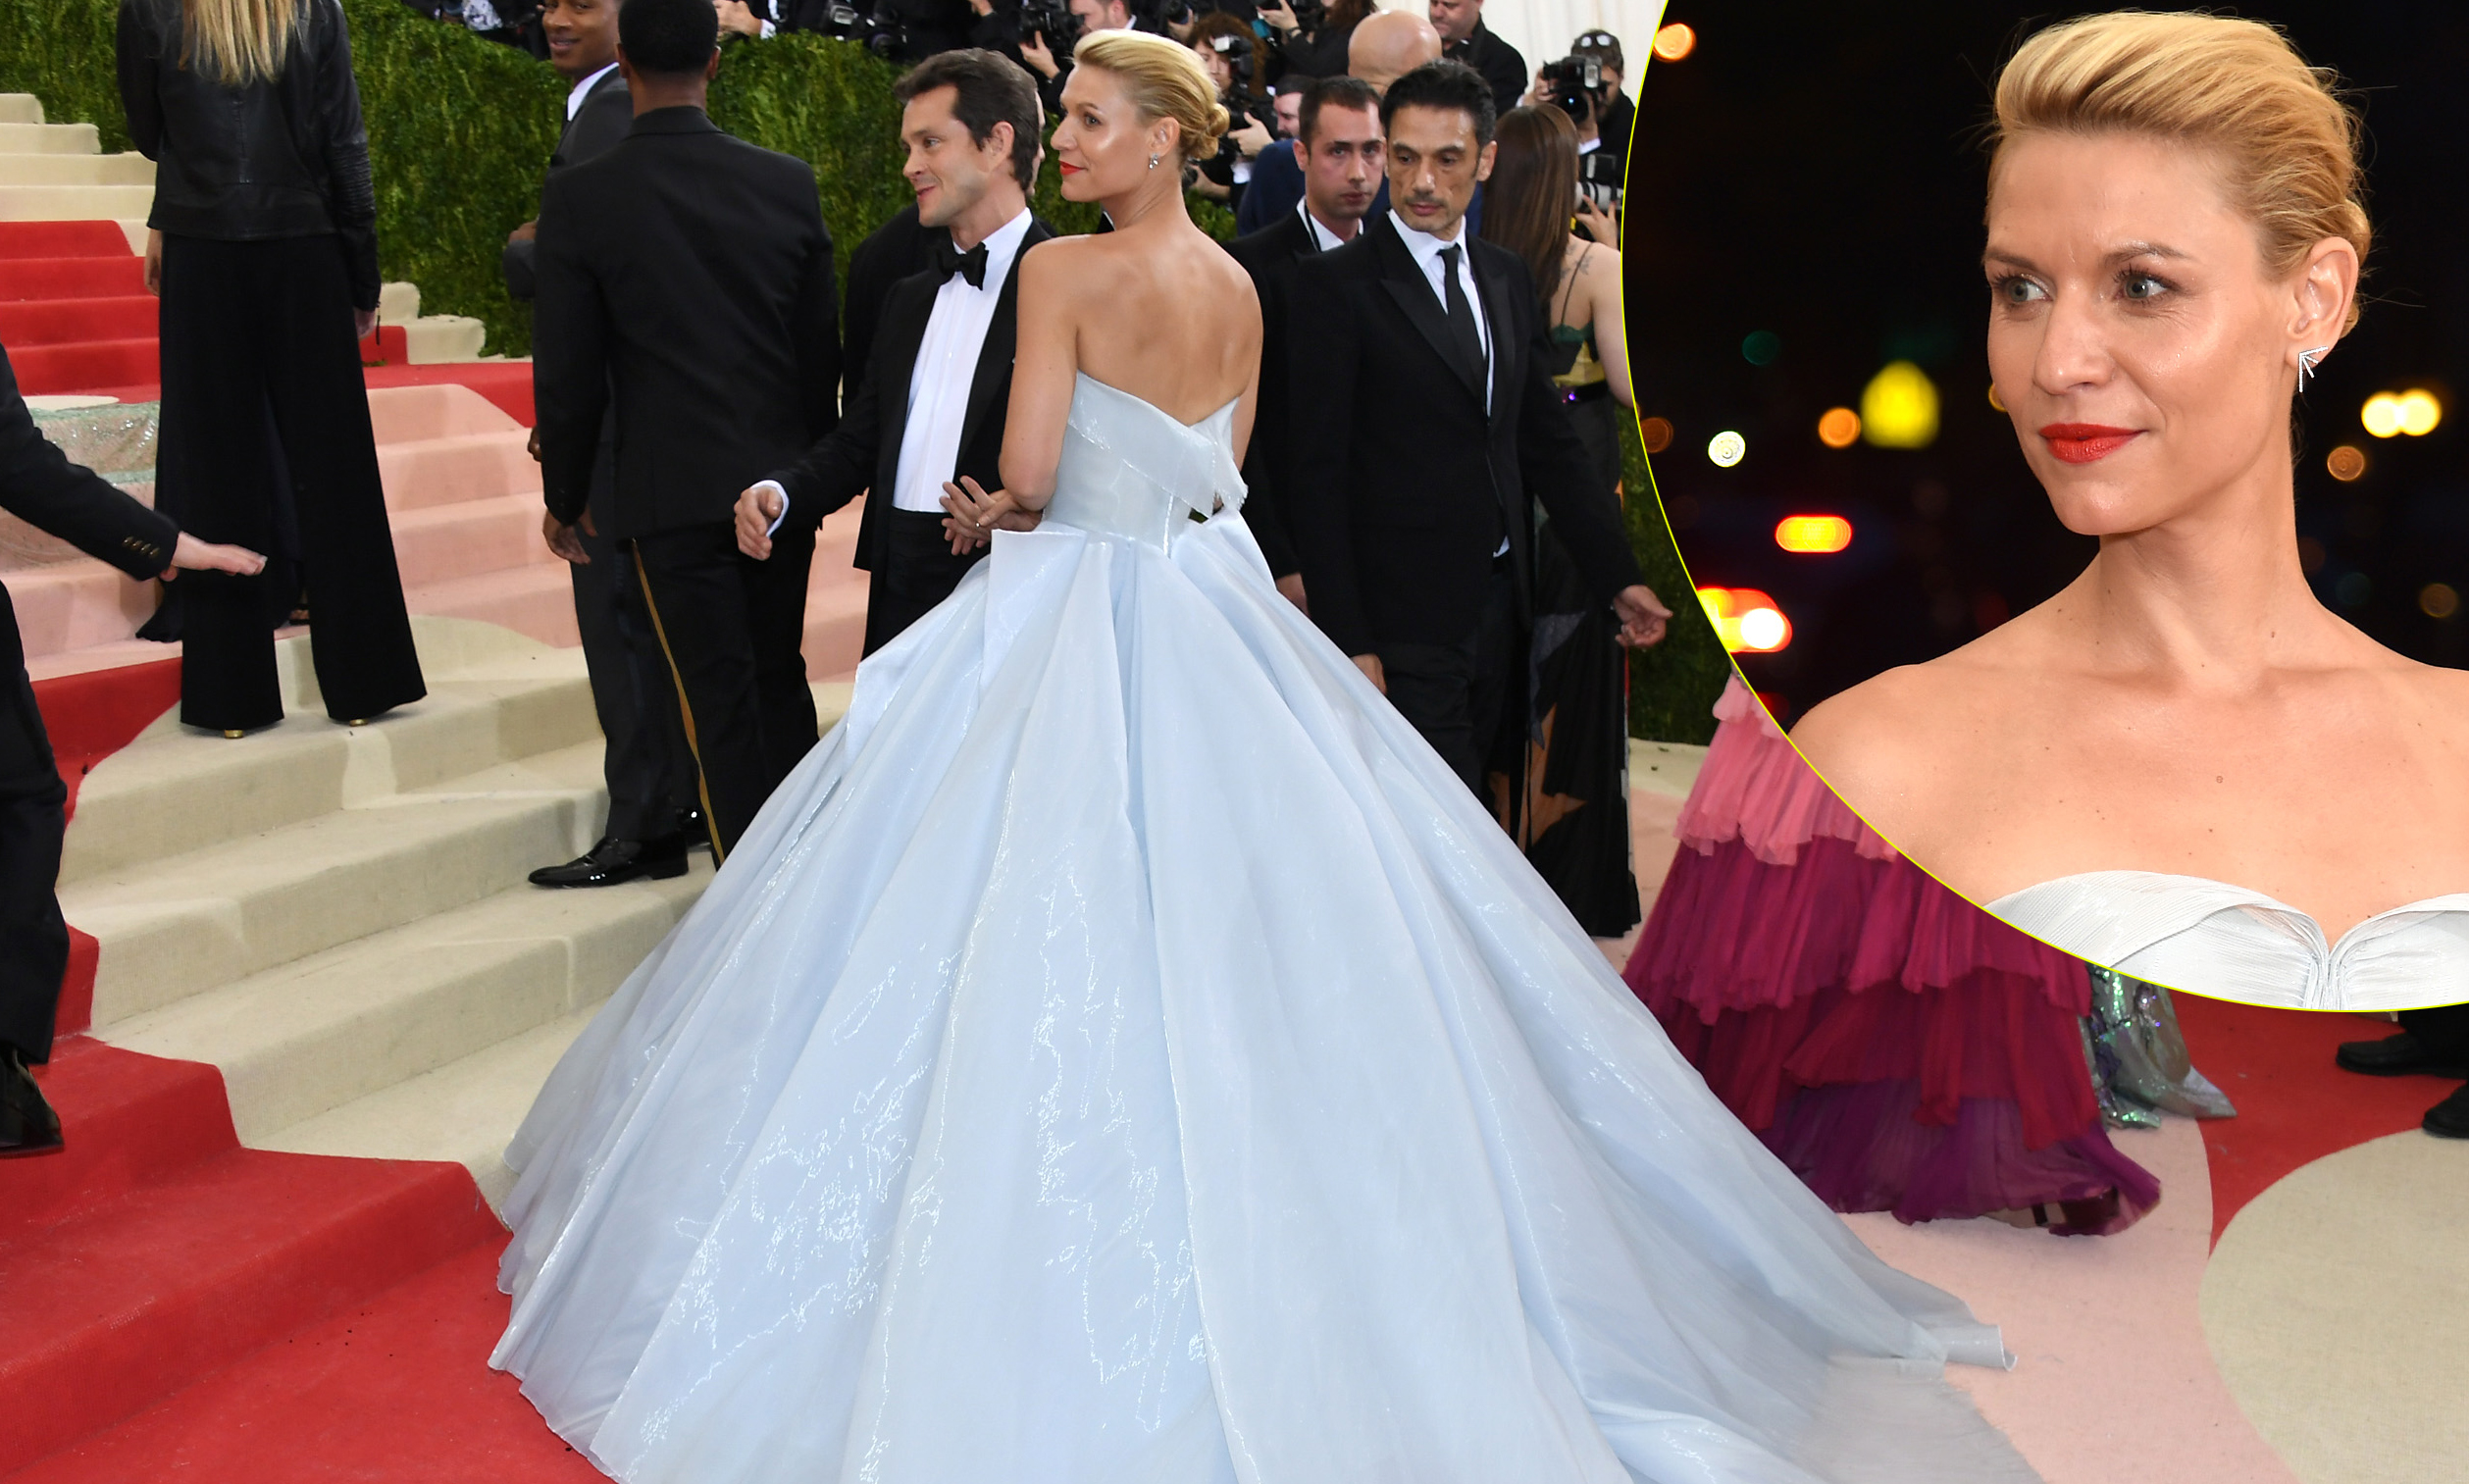 Claire Danes Reveals Which Celeb Helped Her Use the Bathroom at 2016 Met Gala